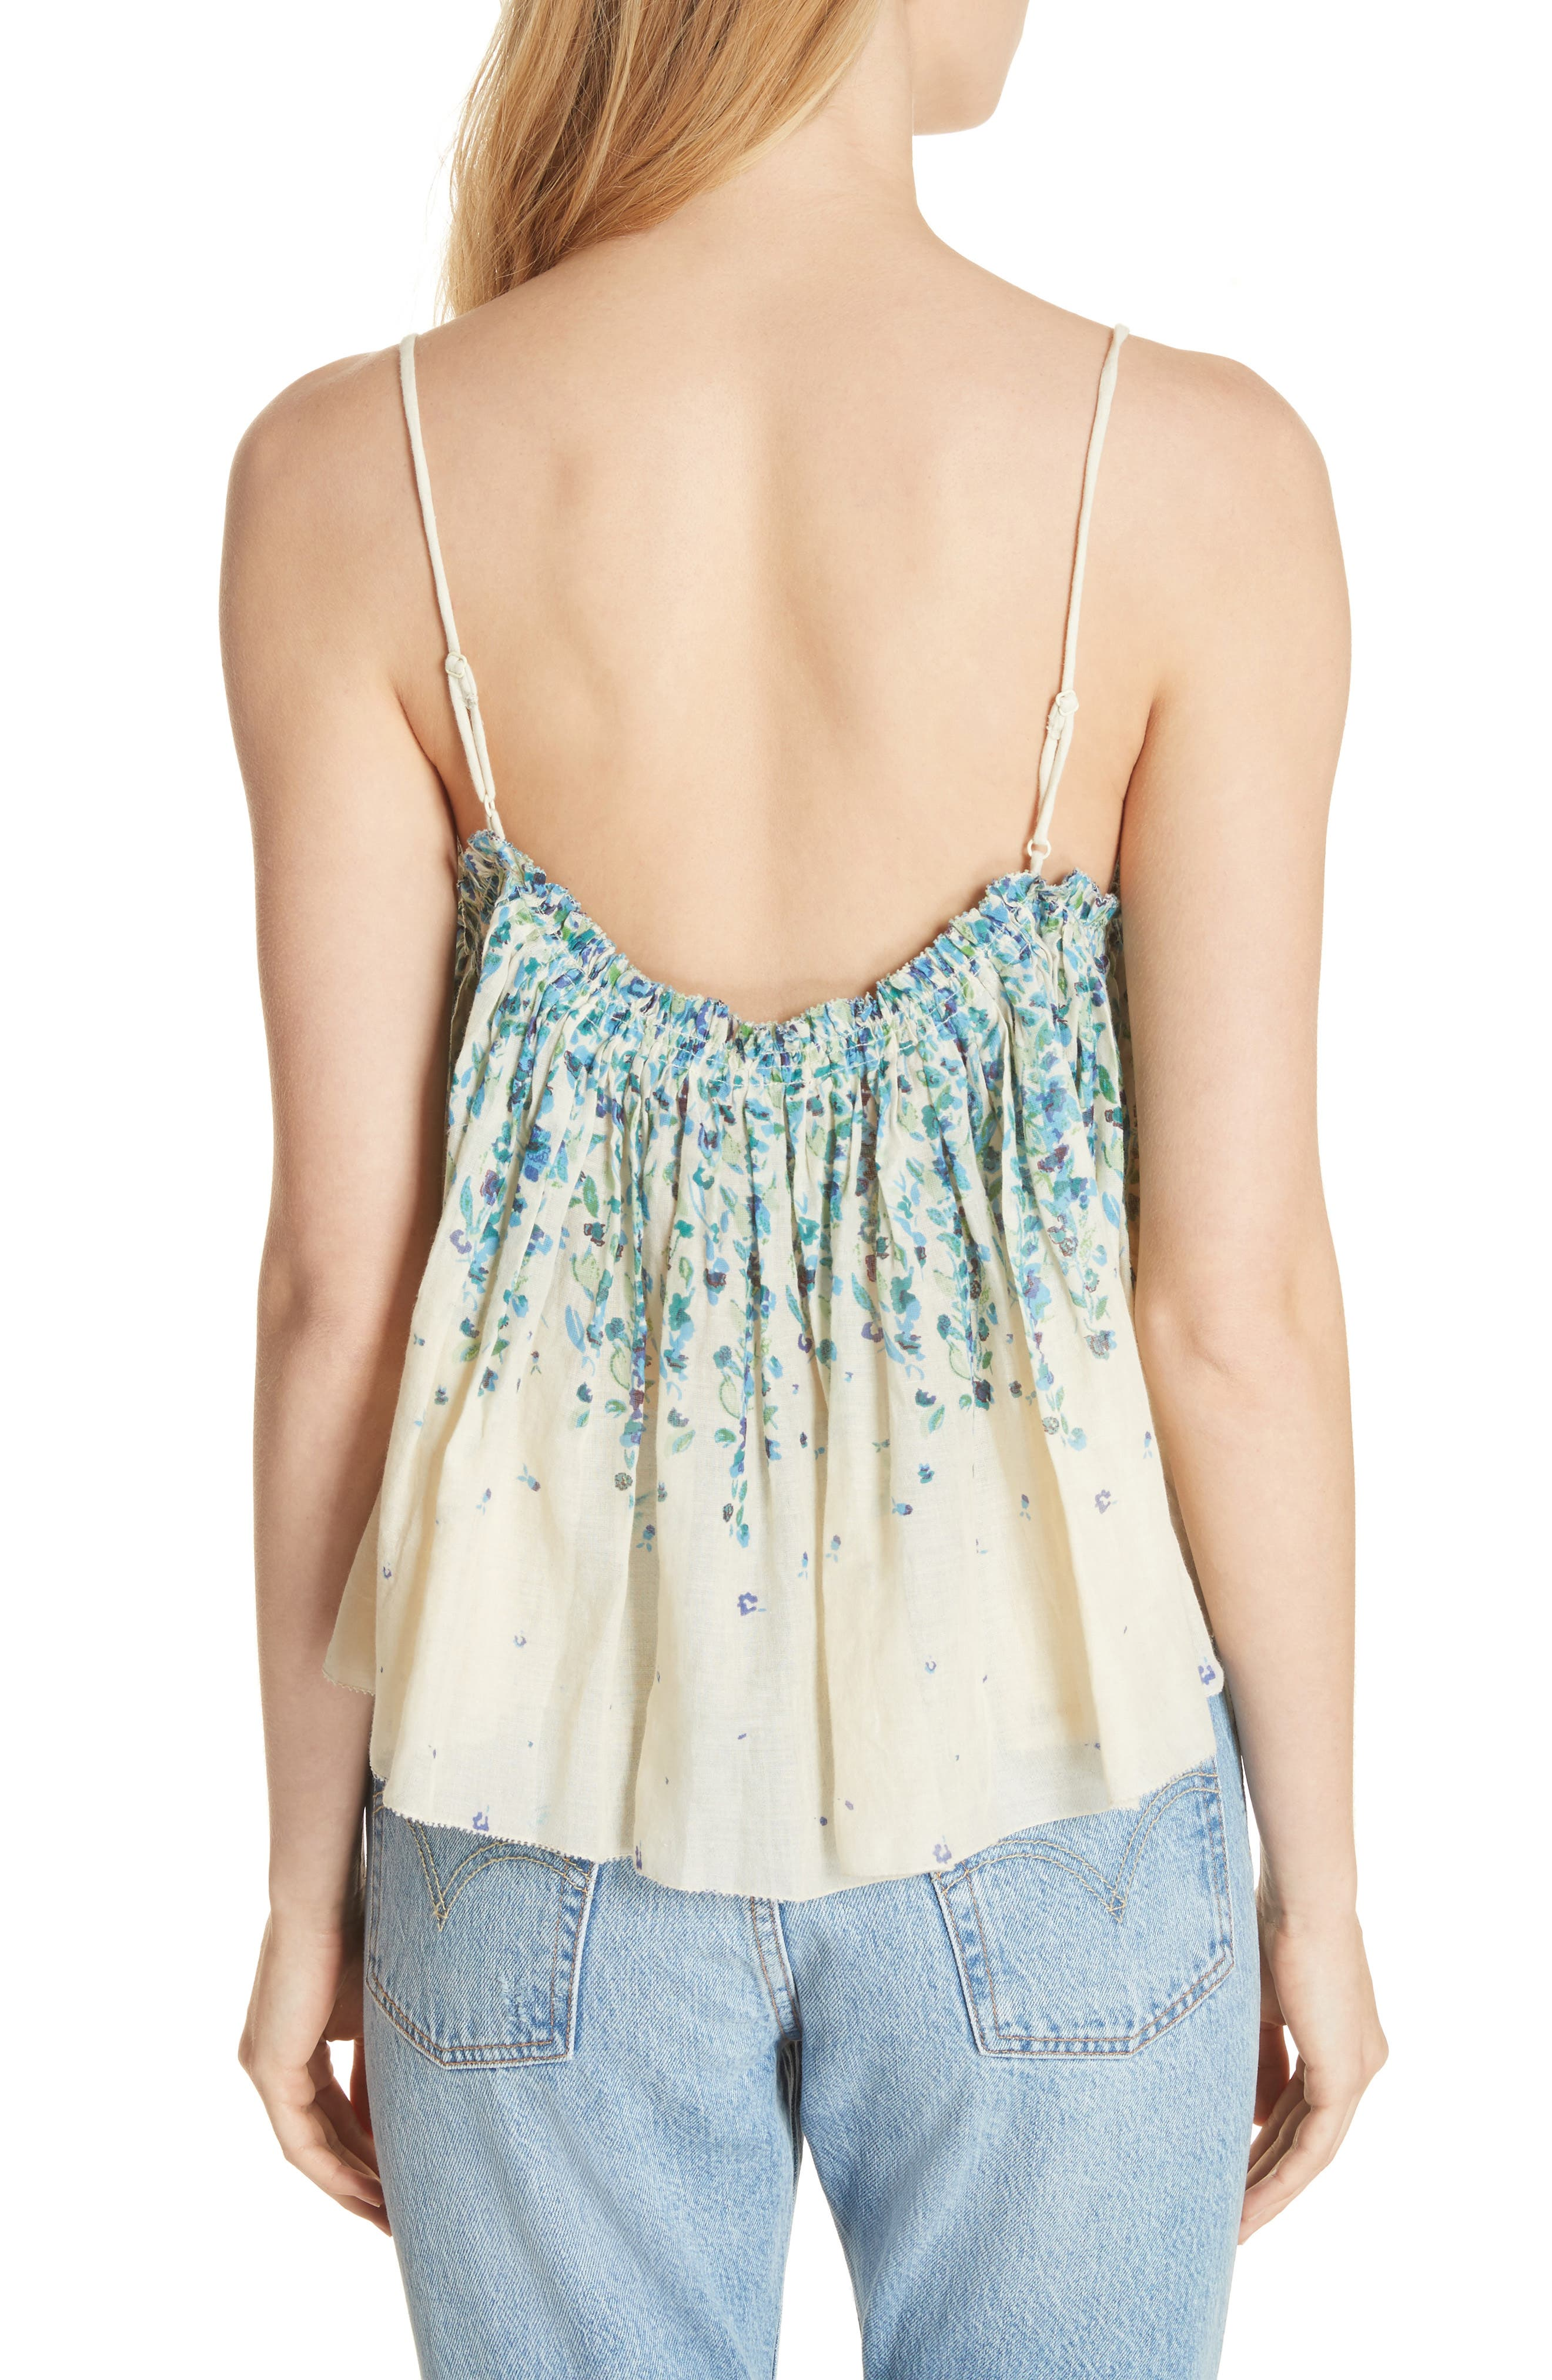 Instant Crush Camisole,                             Alternate thumbnail 2, color,                             Ivory